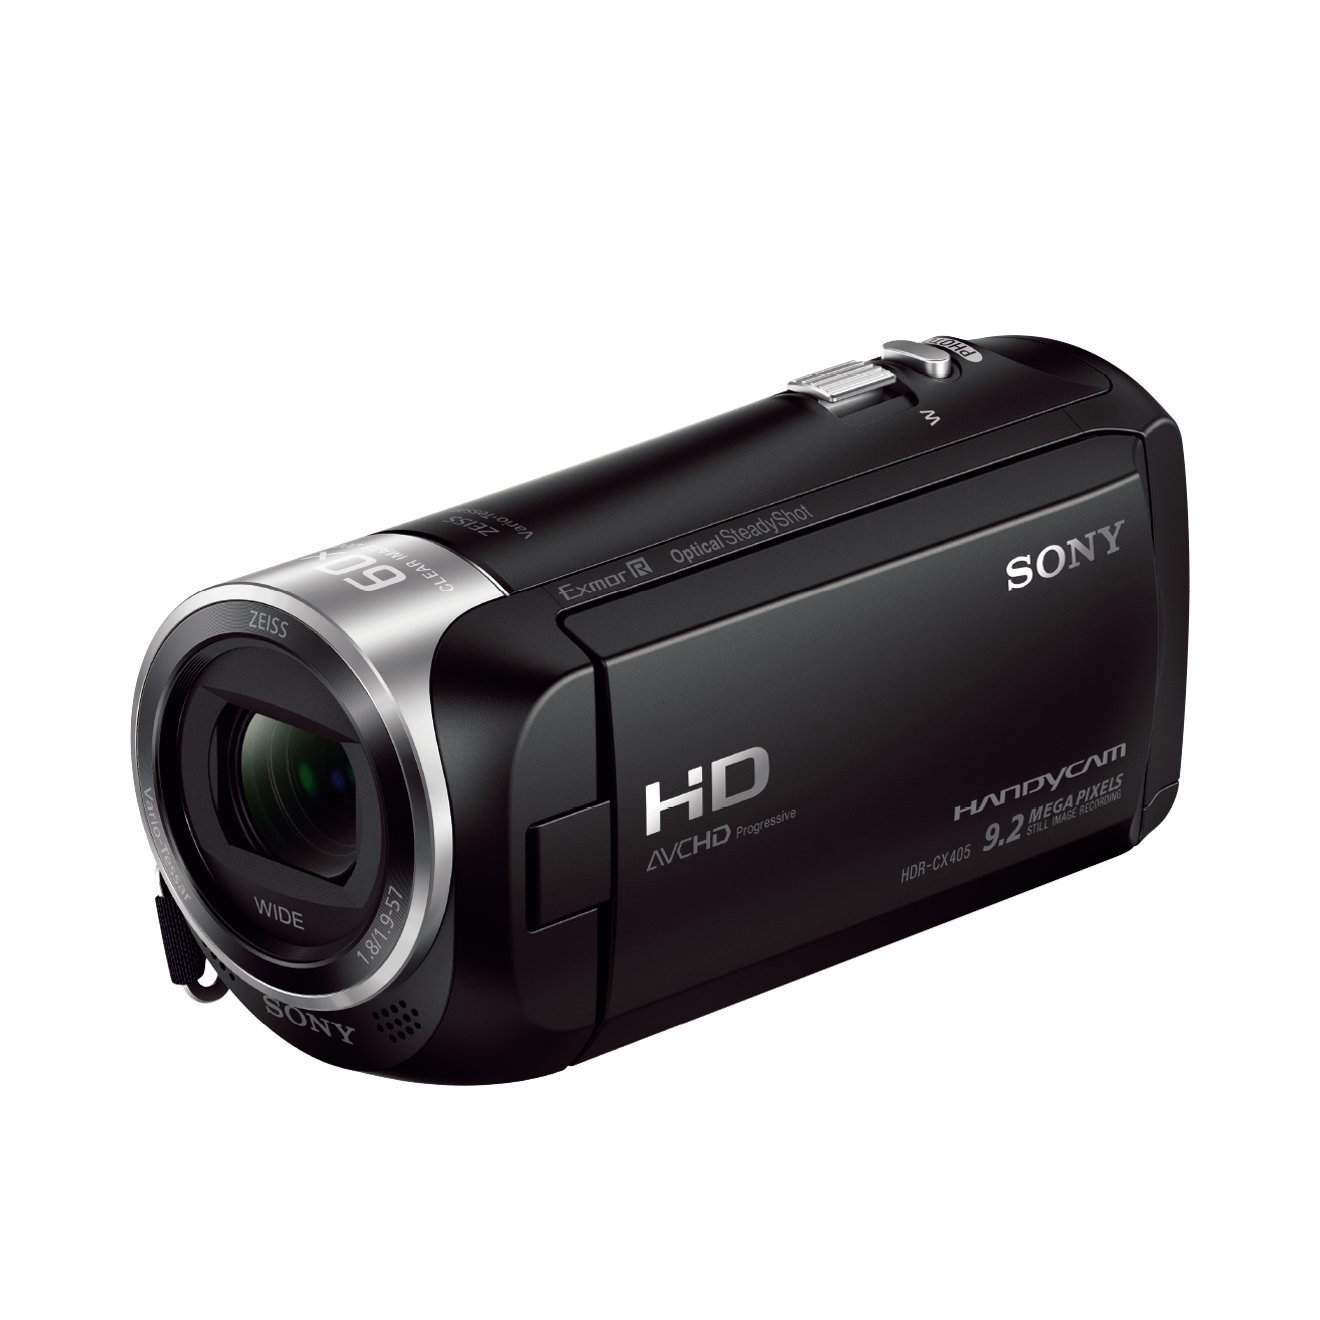 "Sony HDR-CX405 - Videocámara (pantalla de 2.7"", zoom óptico 30x, Full HD), negro"